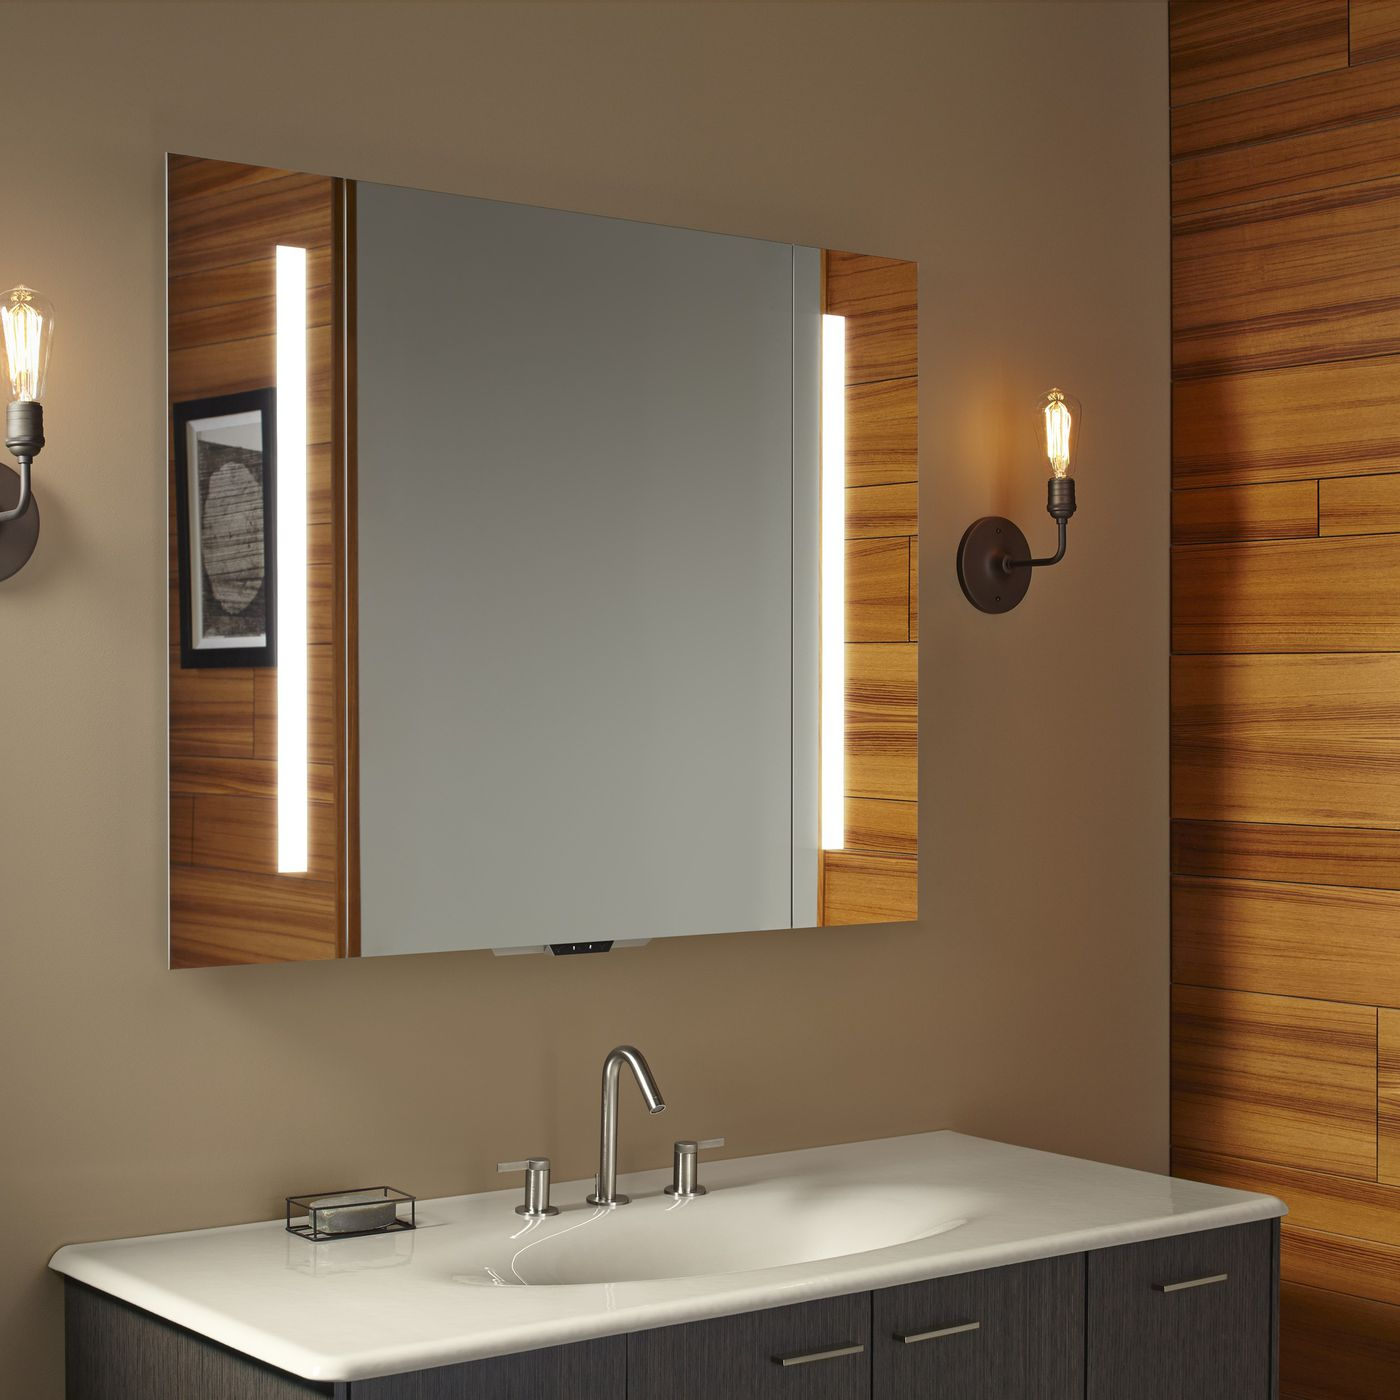 Kohler\'s smart mirror can control a new line of voice-activated ...